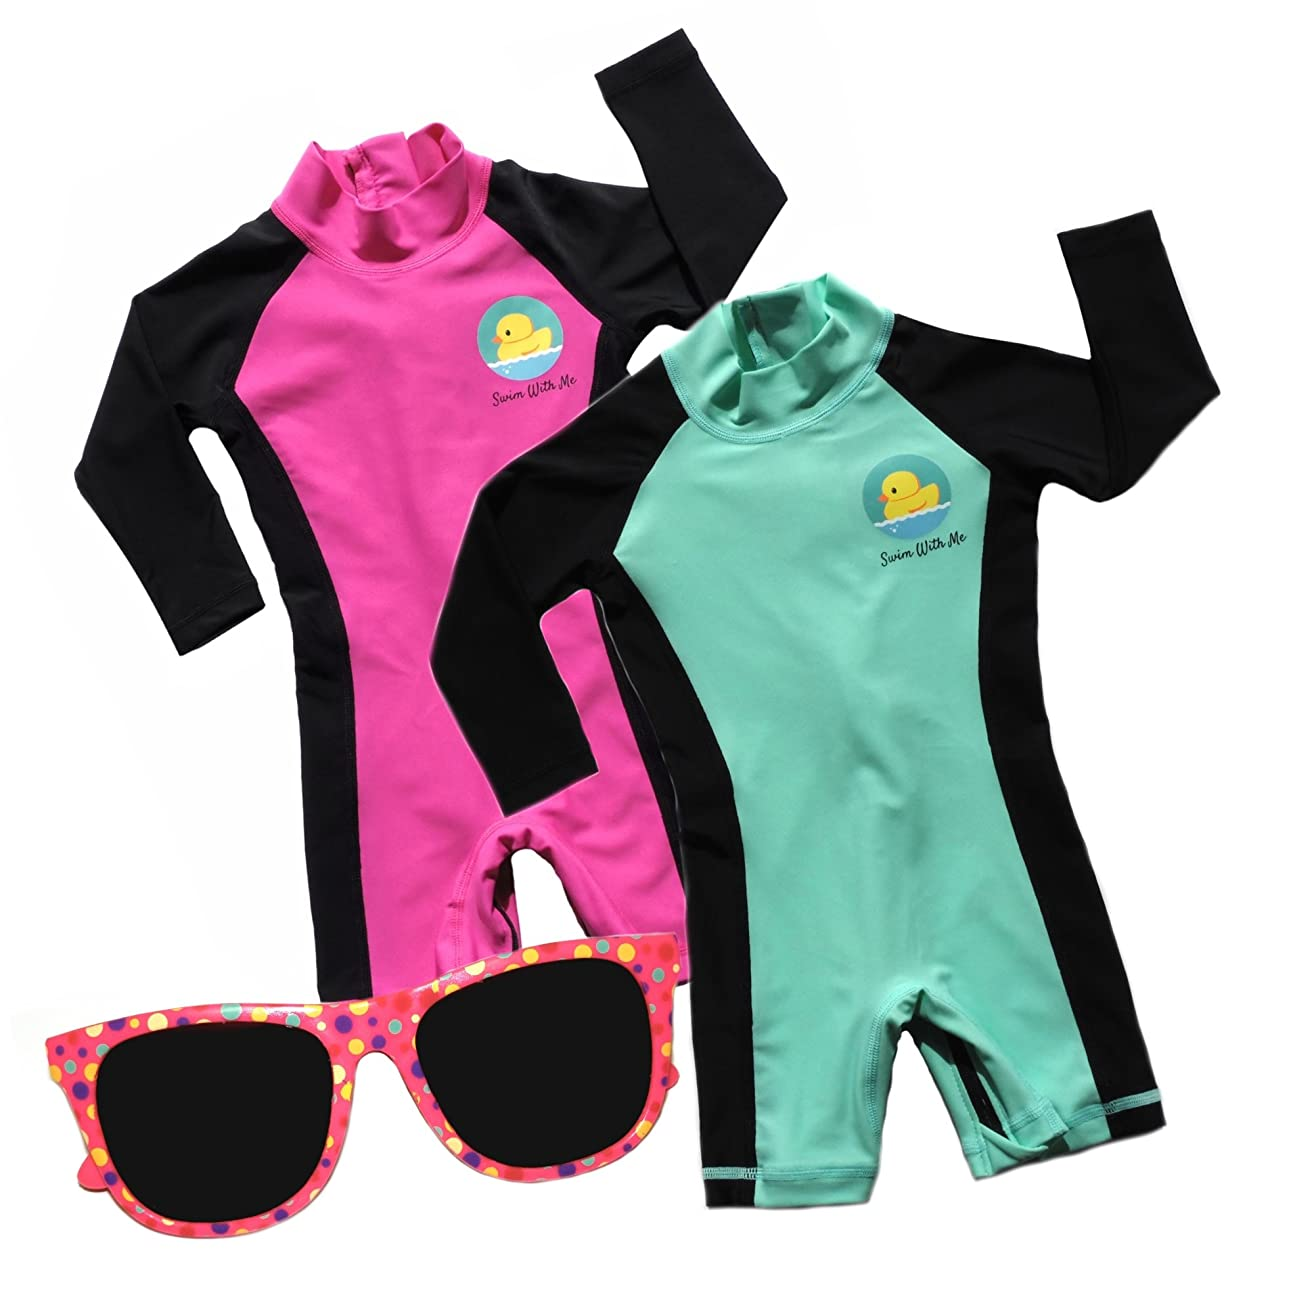 Swim with Me- SPF 50+ Total Sun Protection Swimsuit for Infant, Baby, Toddler, and Kids.